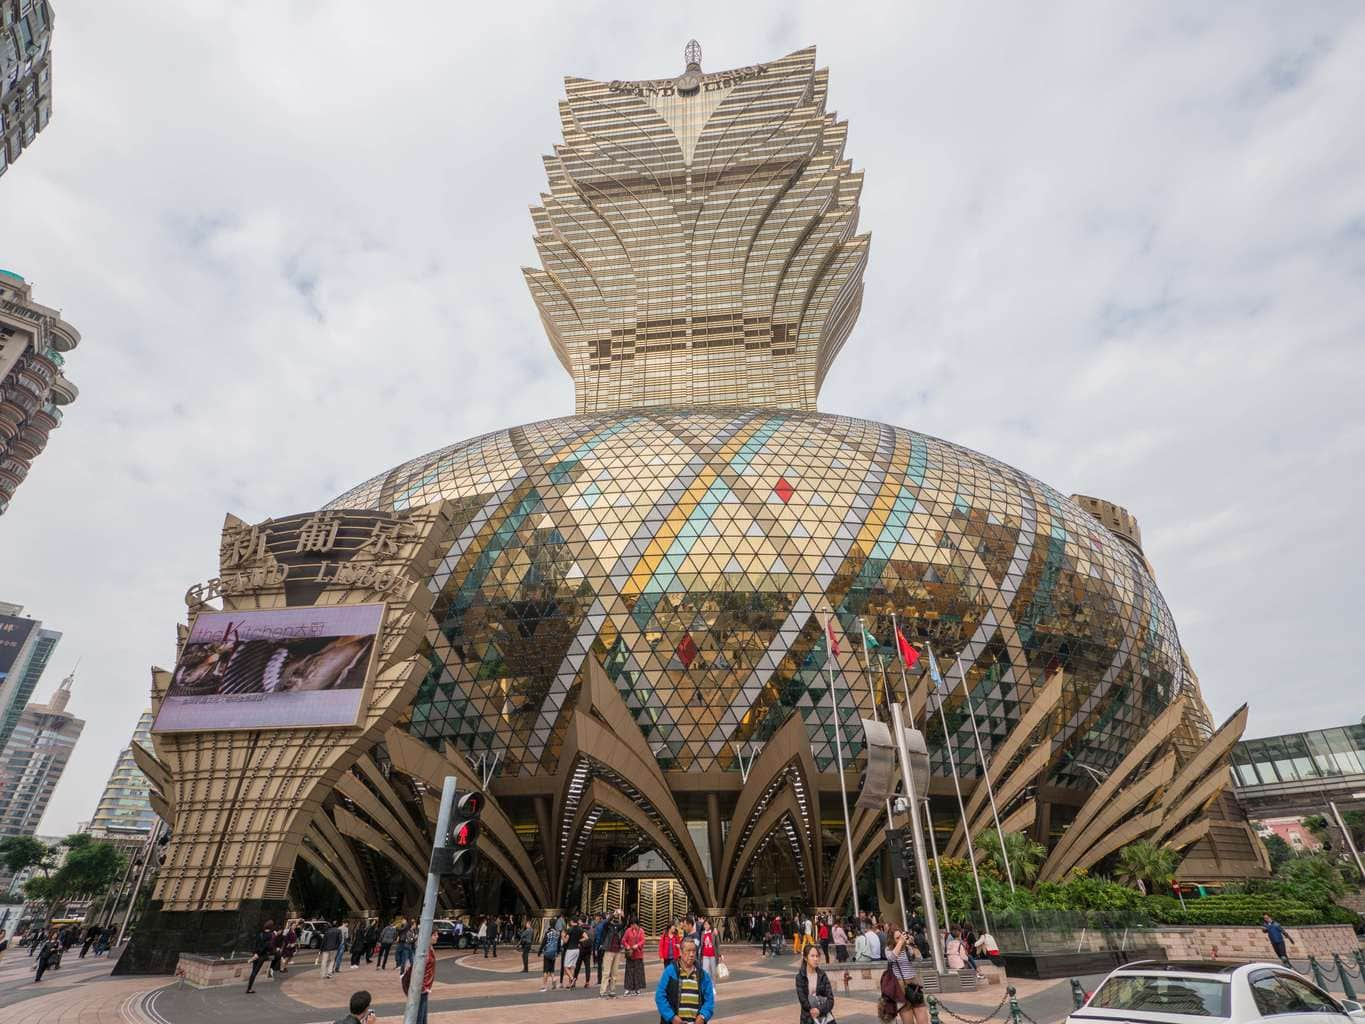 Grand Lisboa - a must visit on a day trip to Macau